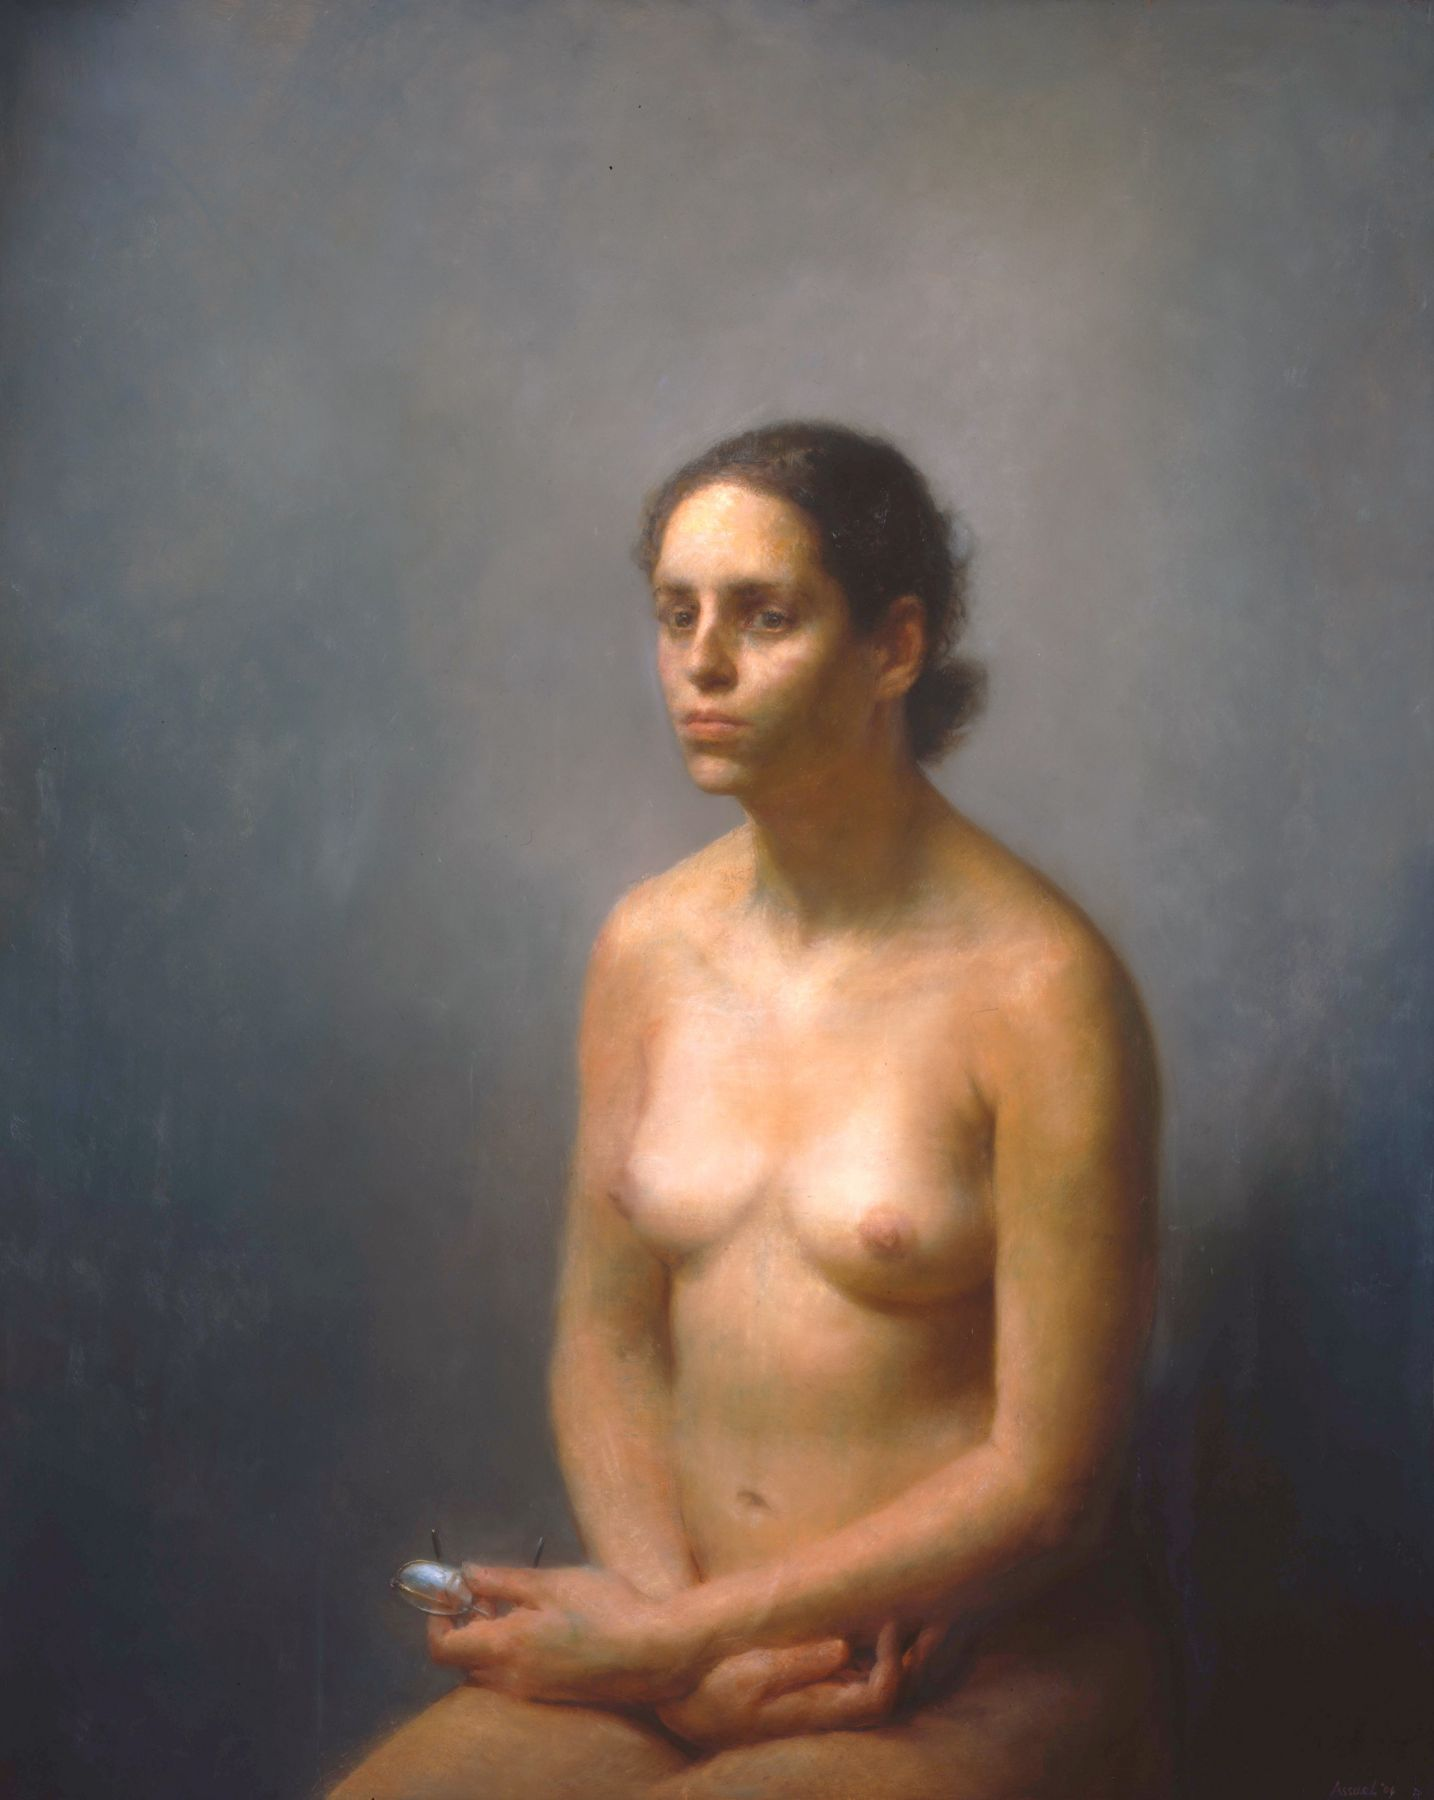 Steven Assael, Figure Holding Eyeglasses, 2006, oil on canvas, 48 x 38 3/4 inches